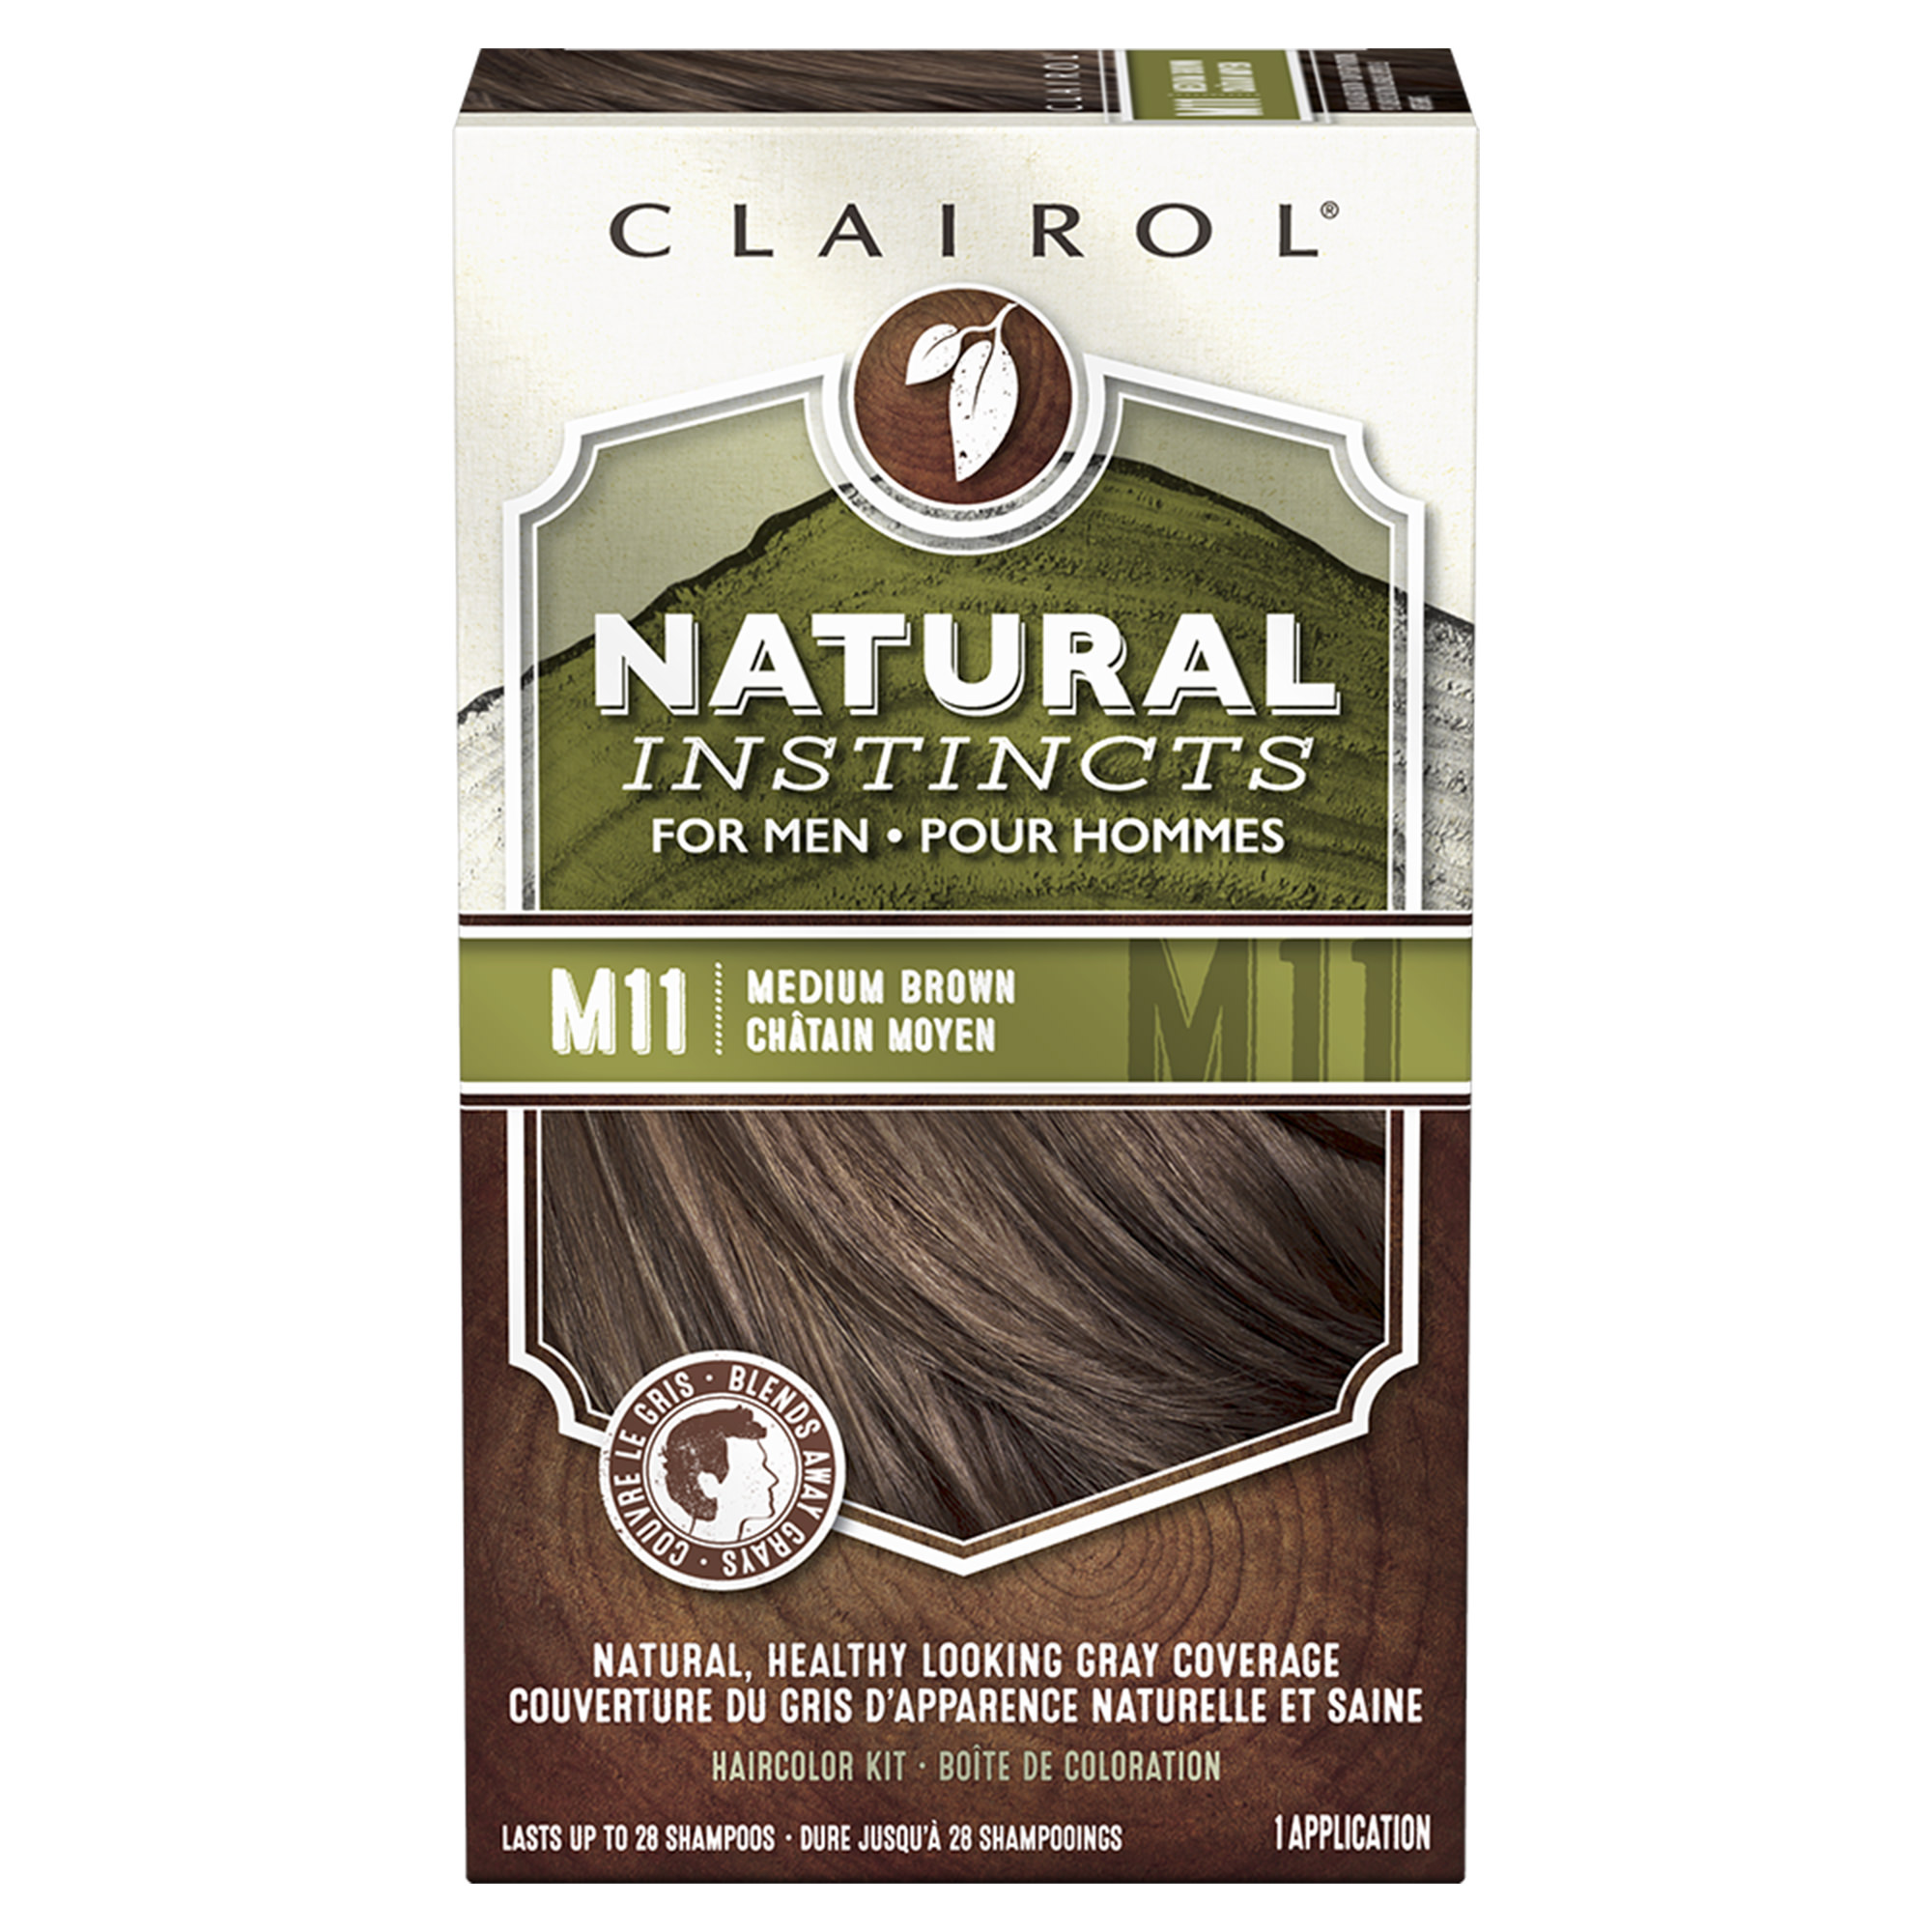 Clairol Natural Instincts Hair Color for Men, M11 Medium Brown